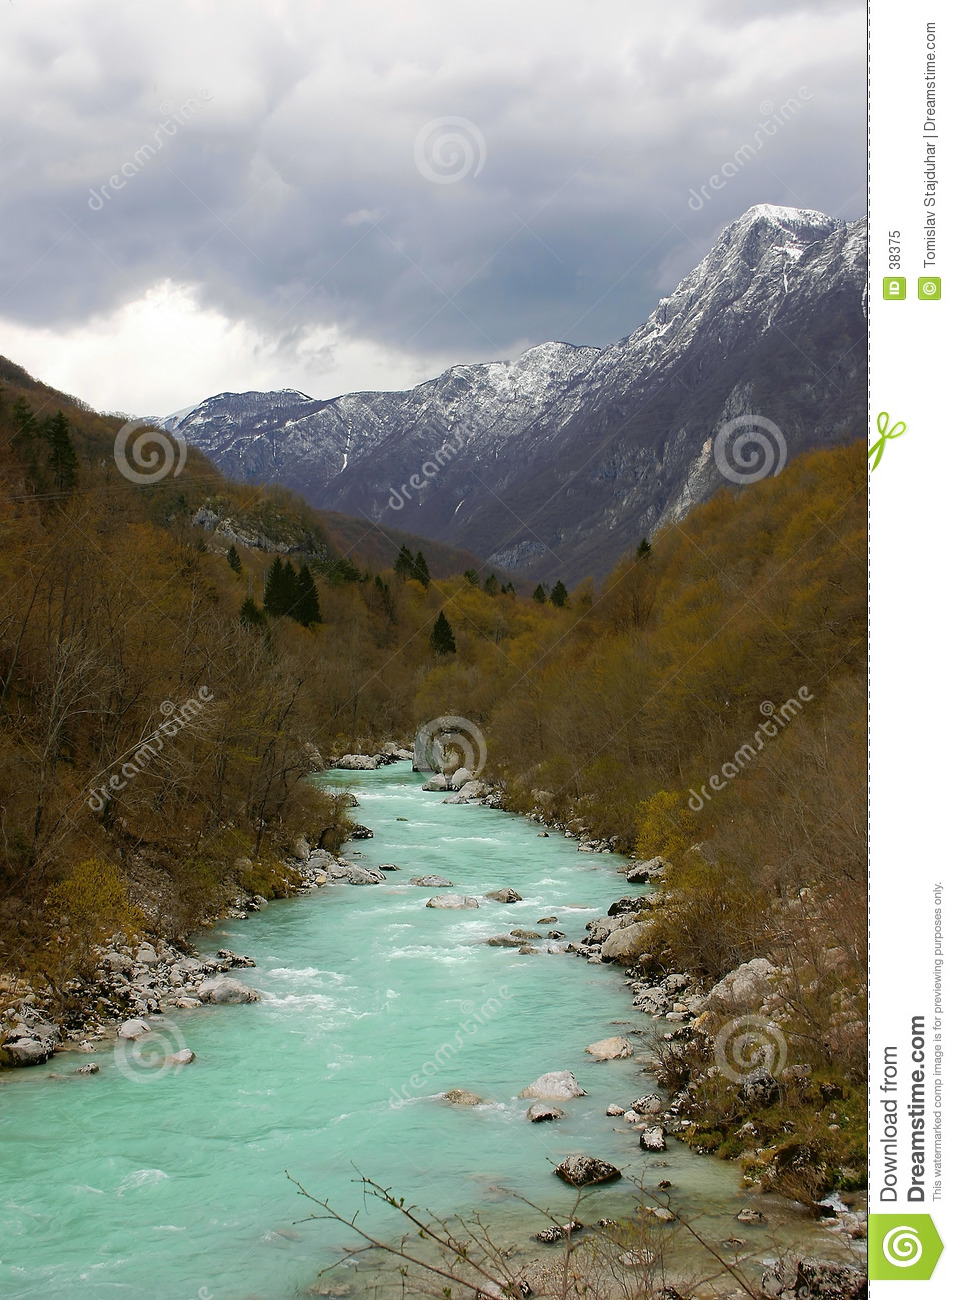 Soca alpine river in Slovenia